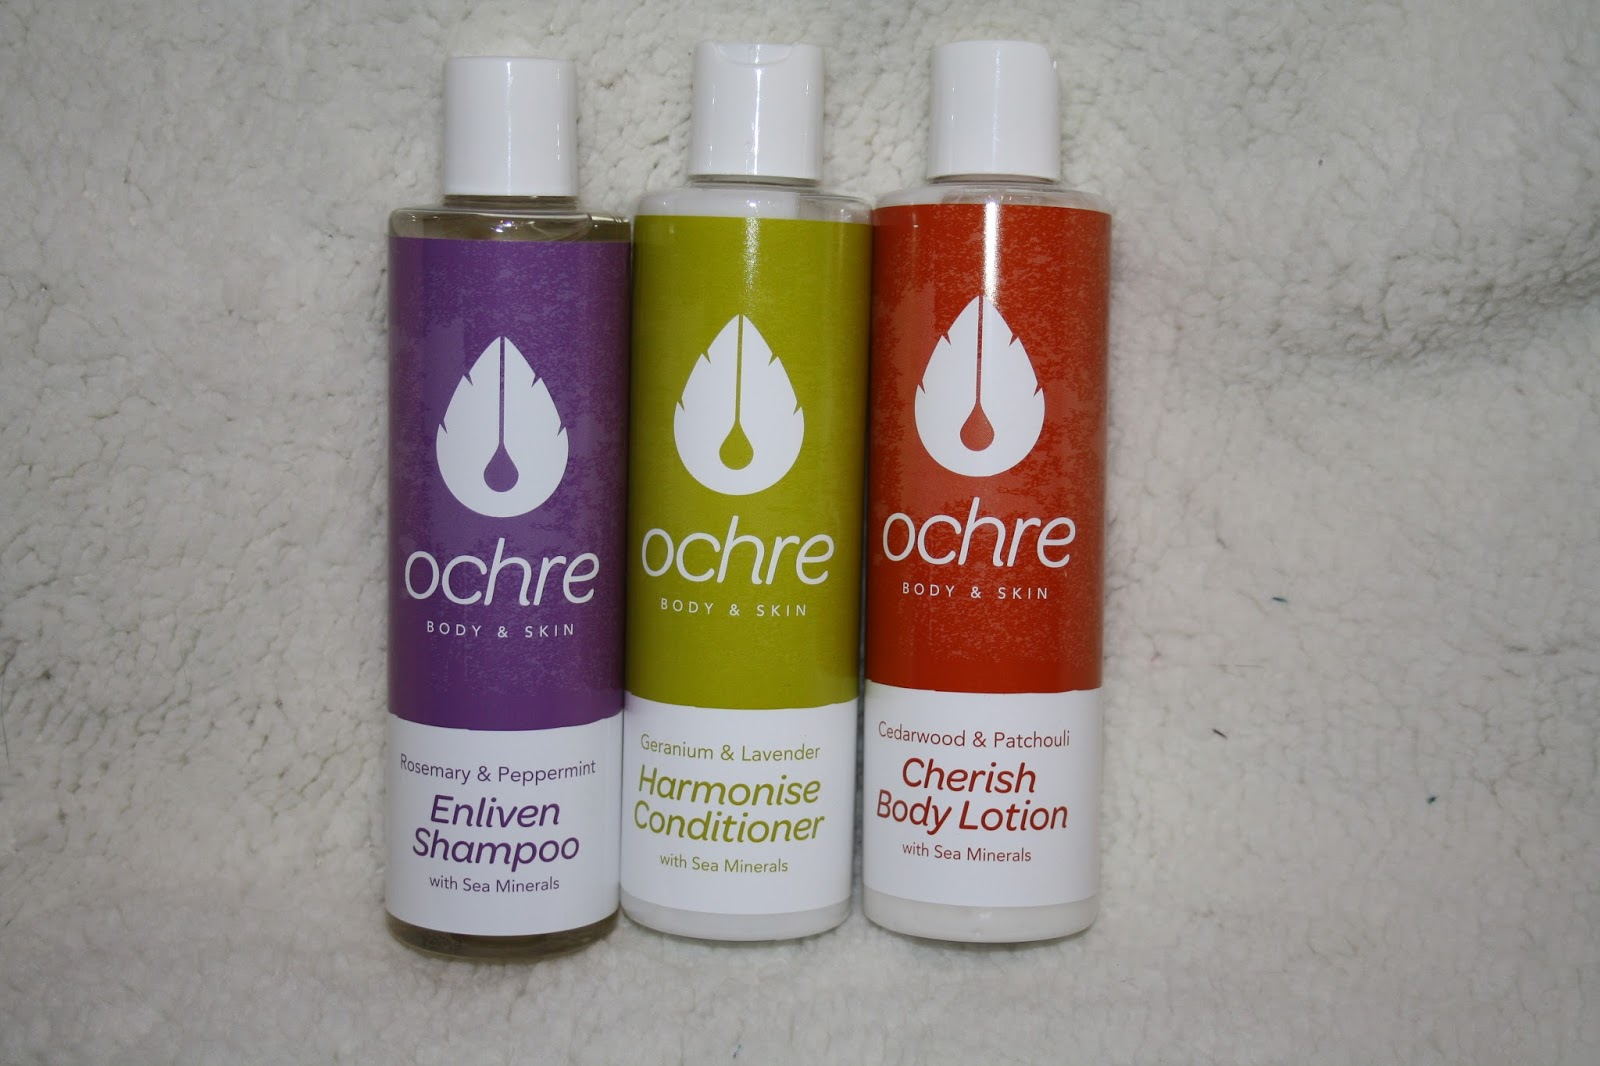 Ochre Body and Skincare Range